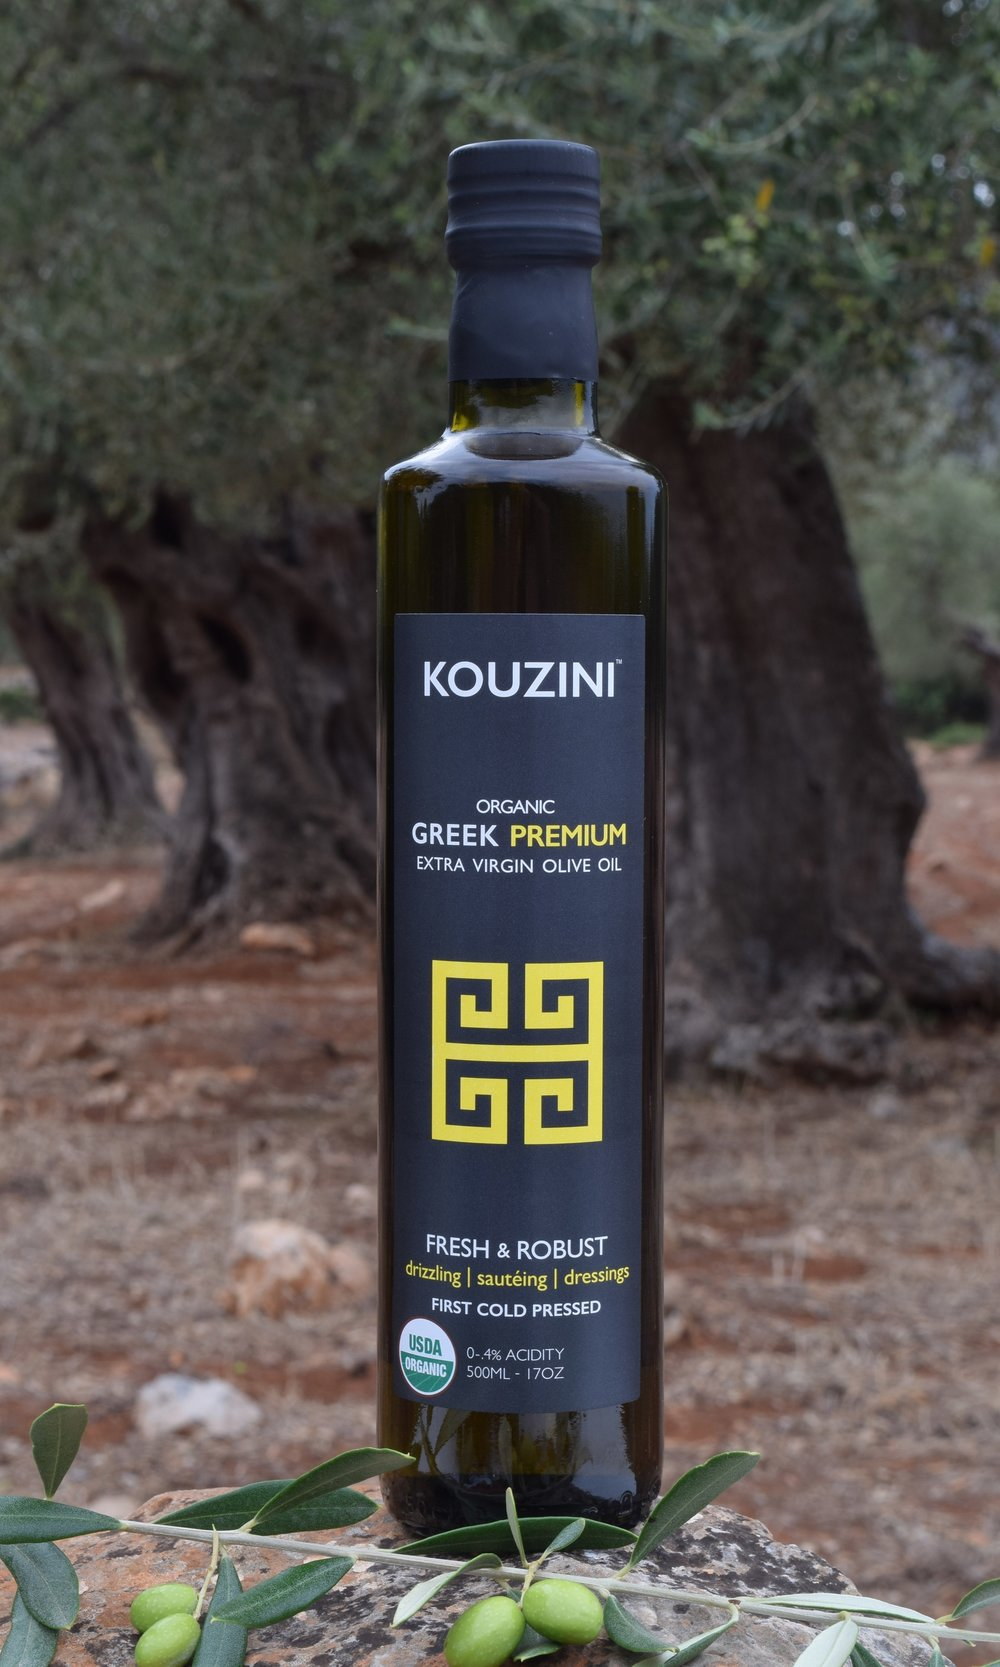 USDA Organic Ultra Premium Greek extra virgin olive oil